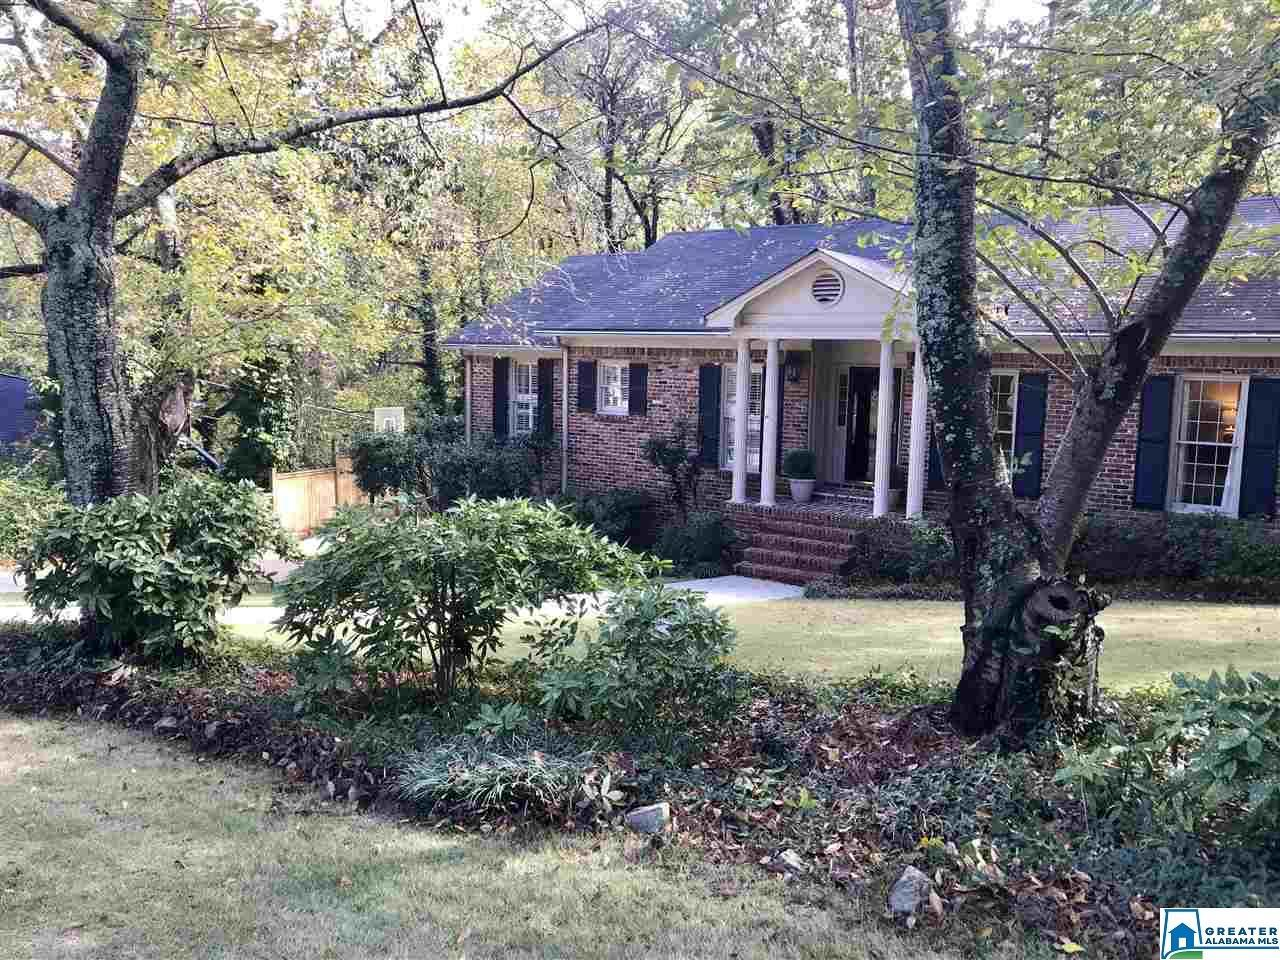 3545 SPRING VALLEY RD, Mountain Brook, AL 35223 - MLS#: 896198